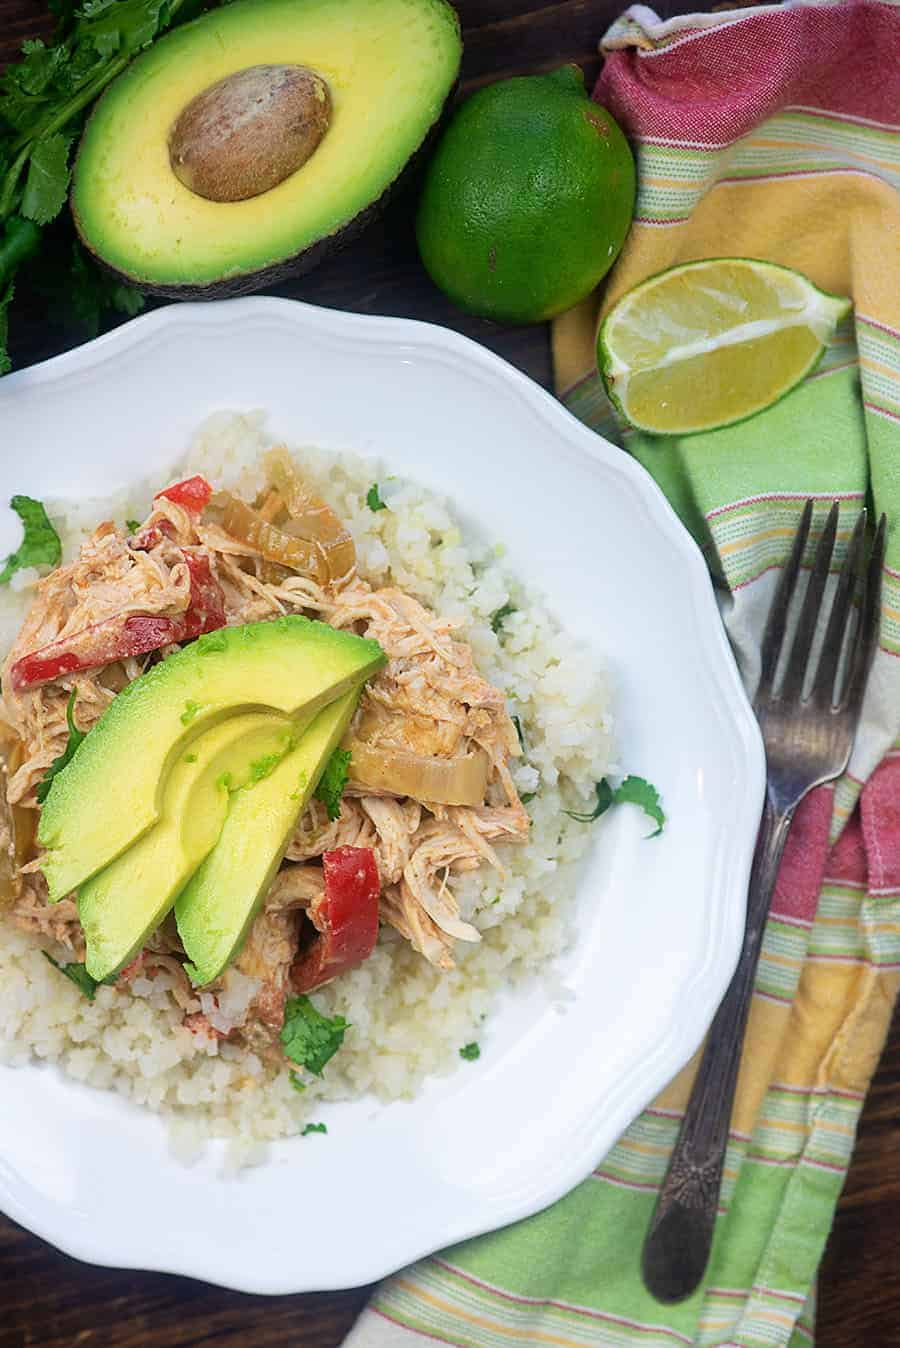 chicken fajitas topped with avocado slices on a white plate with colorful cloth napkin